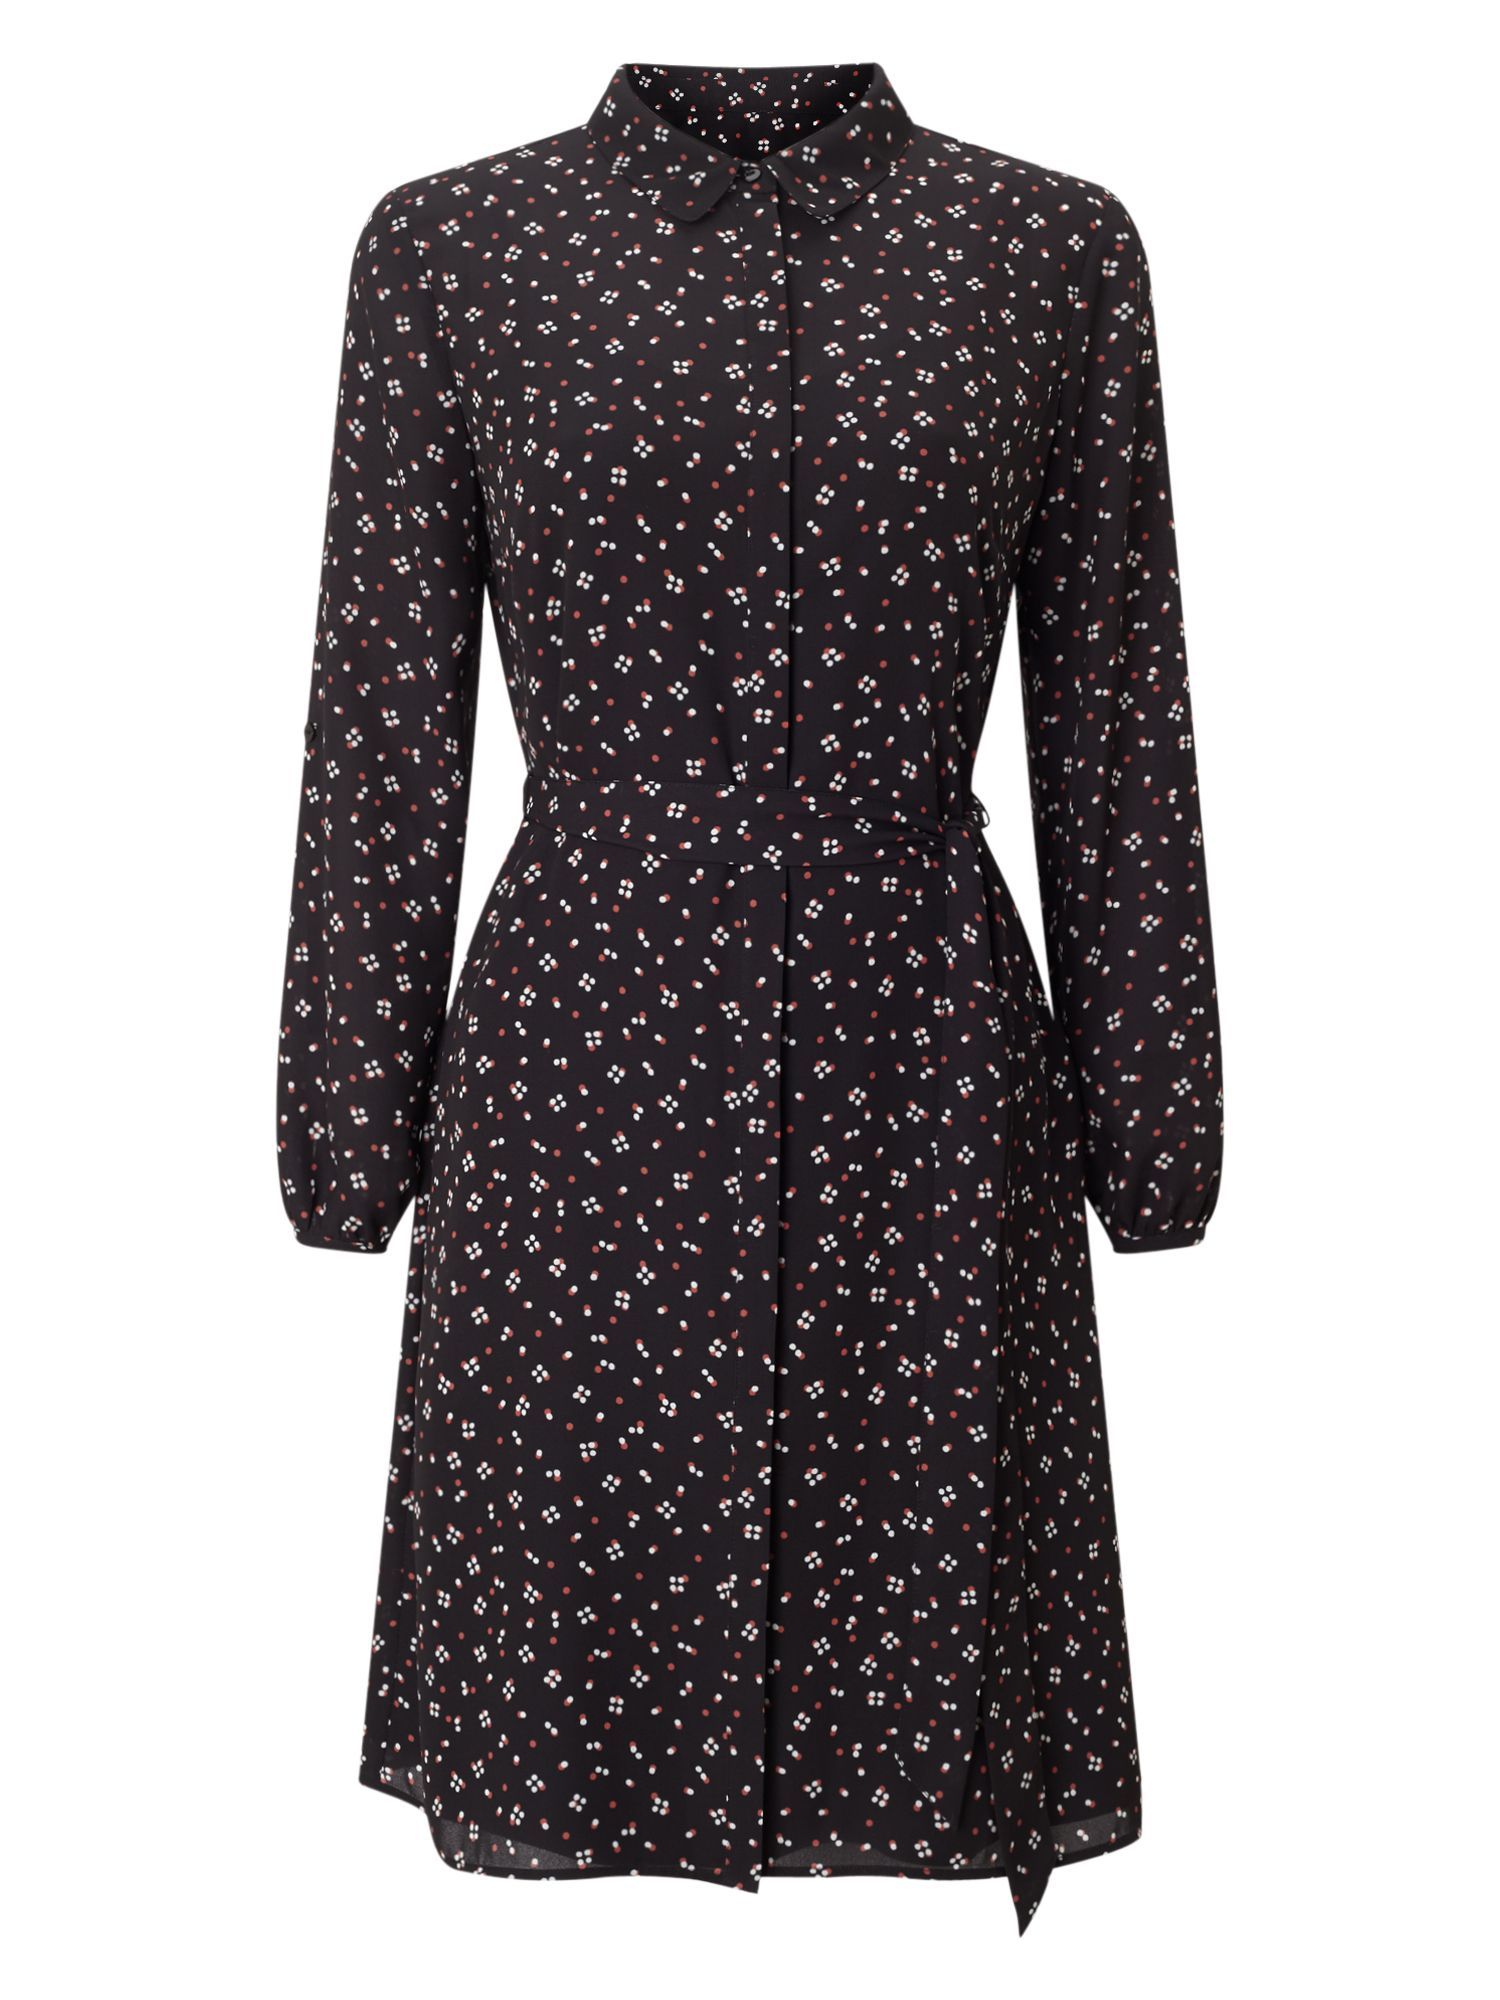 Precis Petite Petite Multi Spot Print Dress, Black Multi